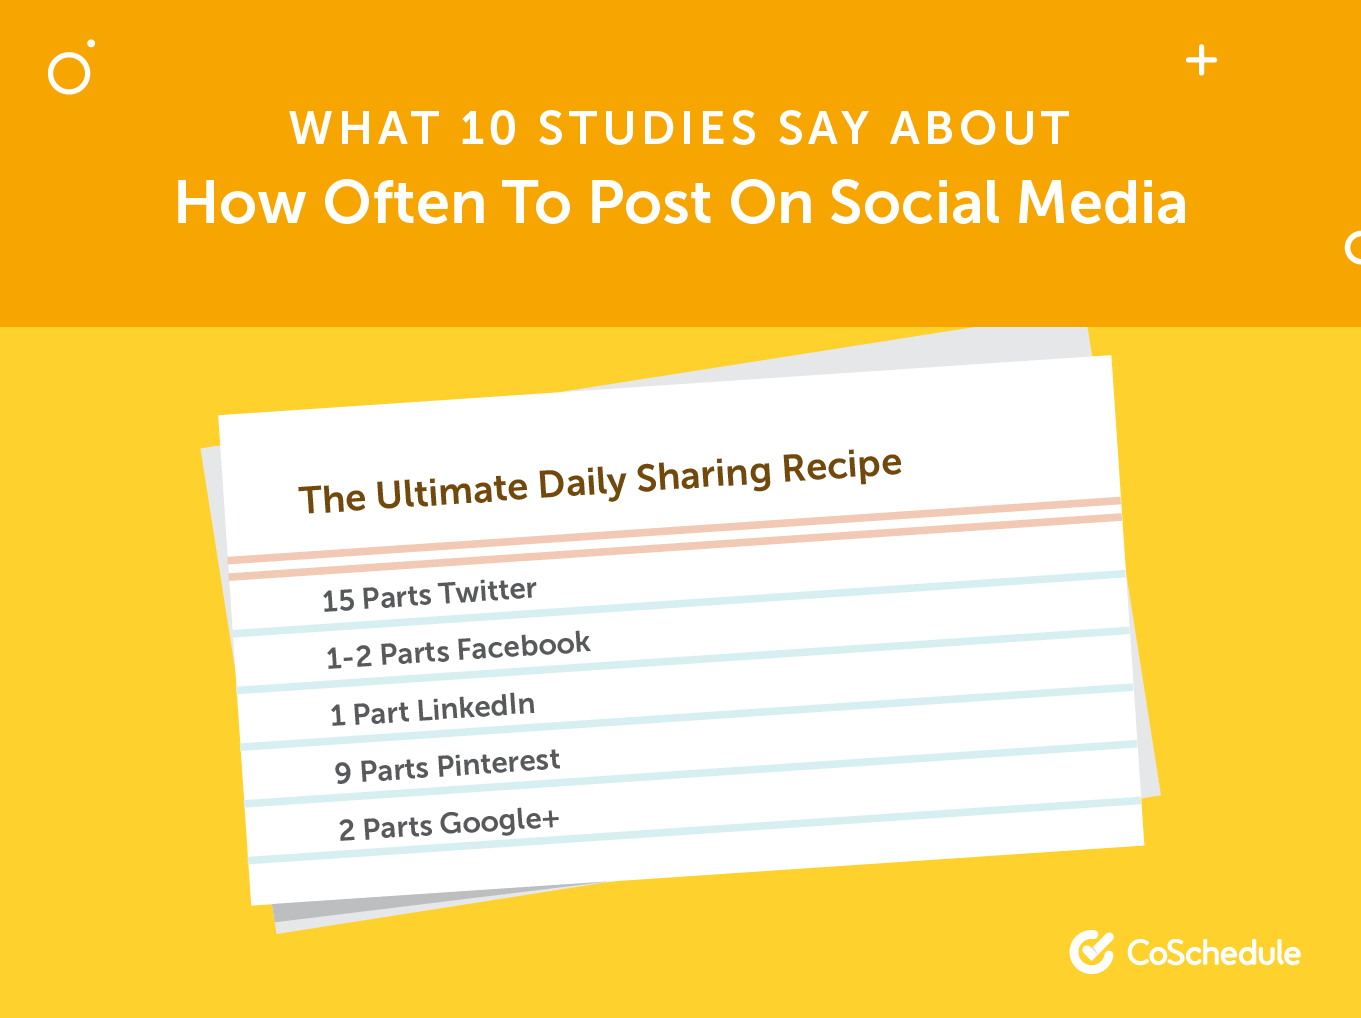 A Recipe for How Often to Post on Social Media